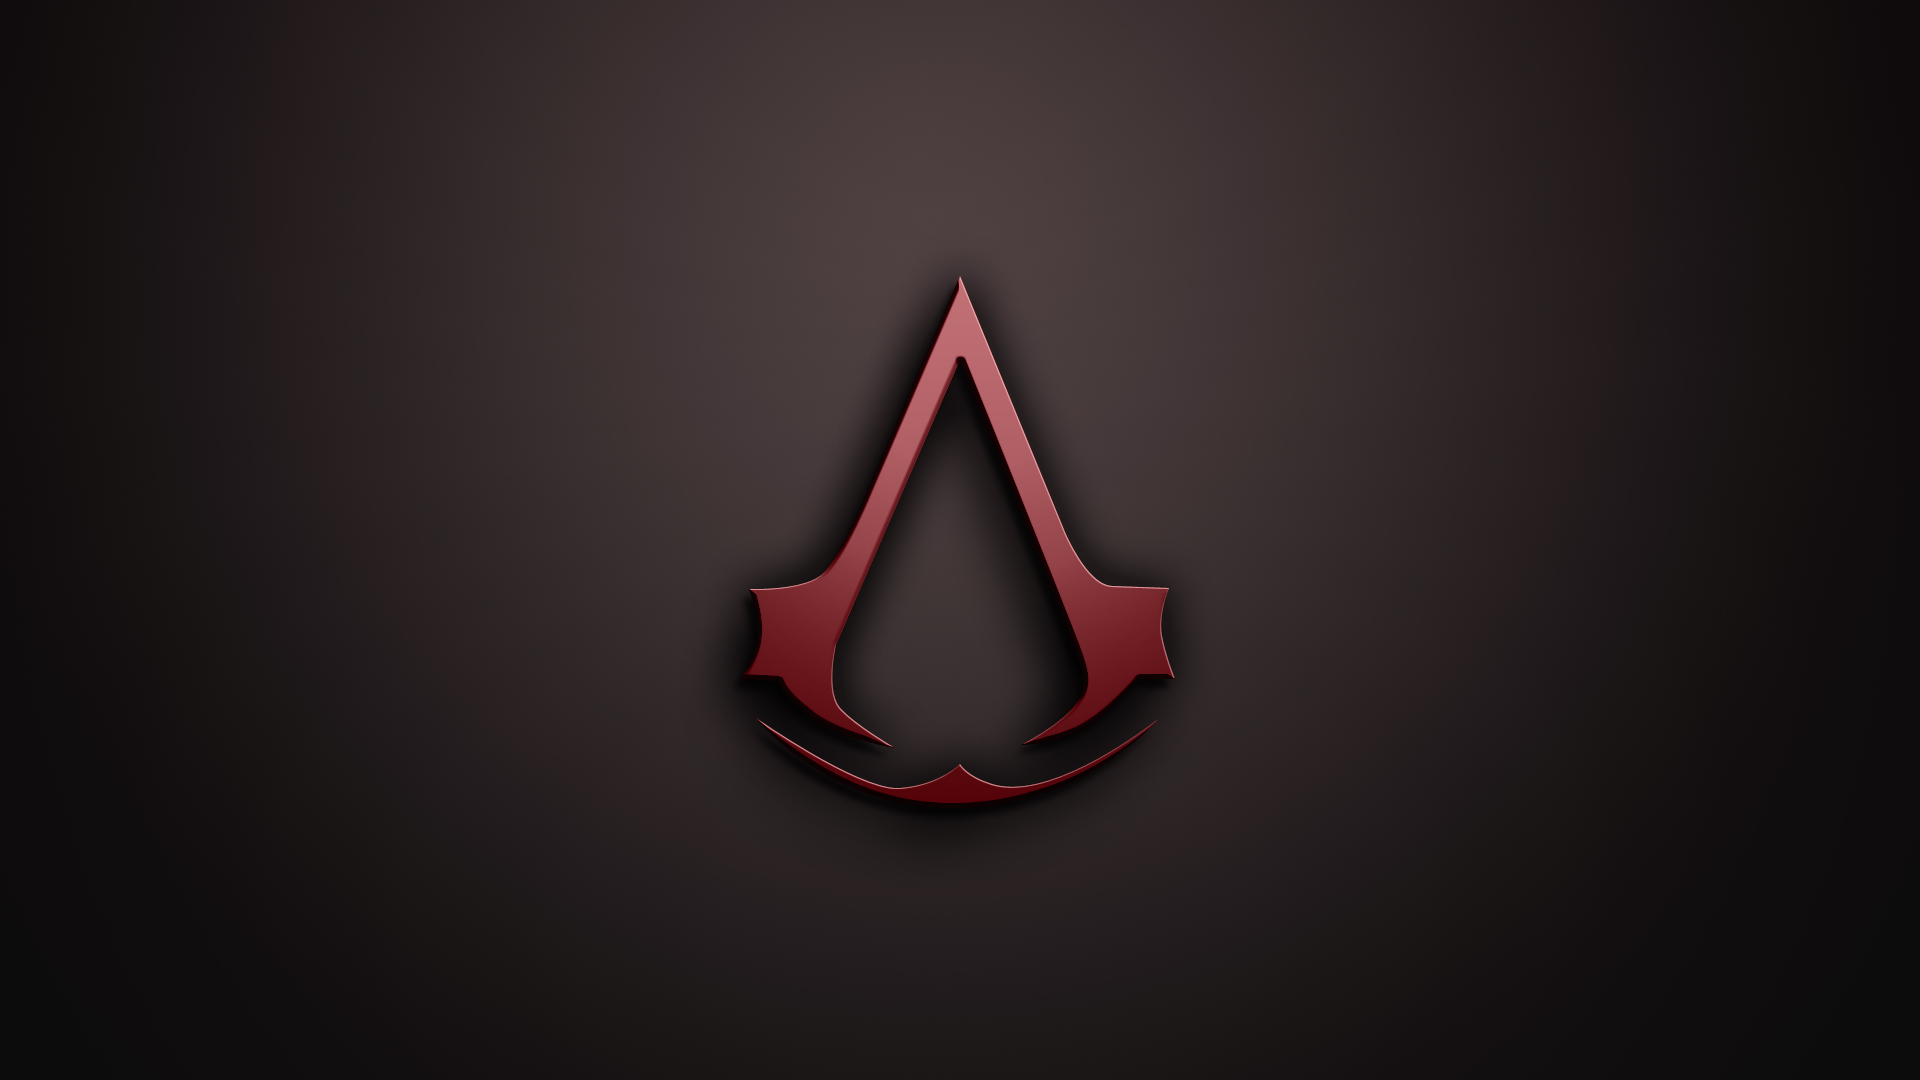 Free Download Assassins Creed Logo Wallpaper 1920x1080 For Your